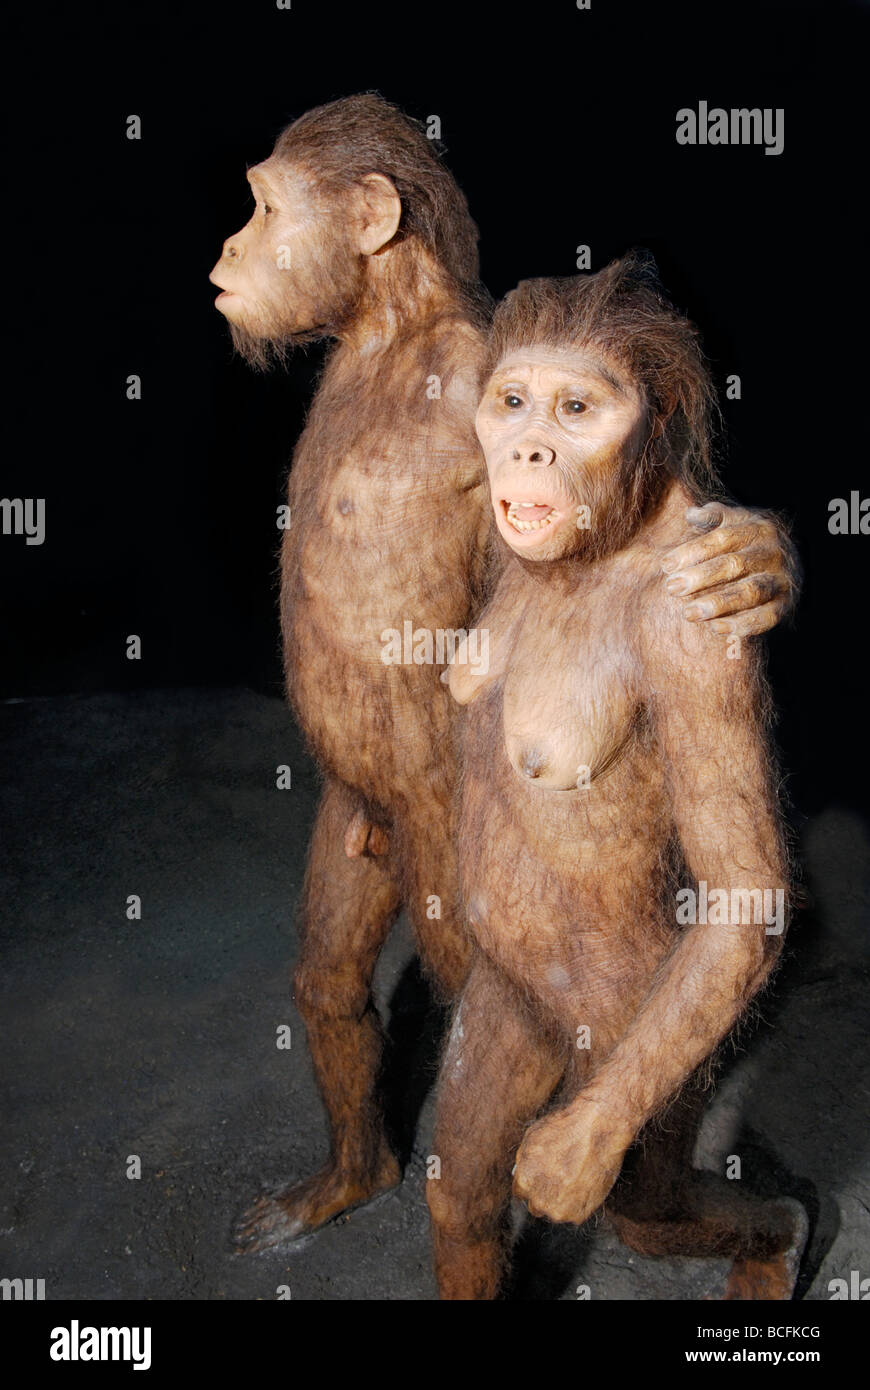 A rendition of two Australopithecines walking in volcanic ash 3.5 million years ago. - Stock Image